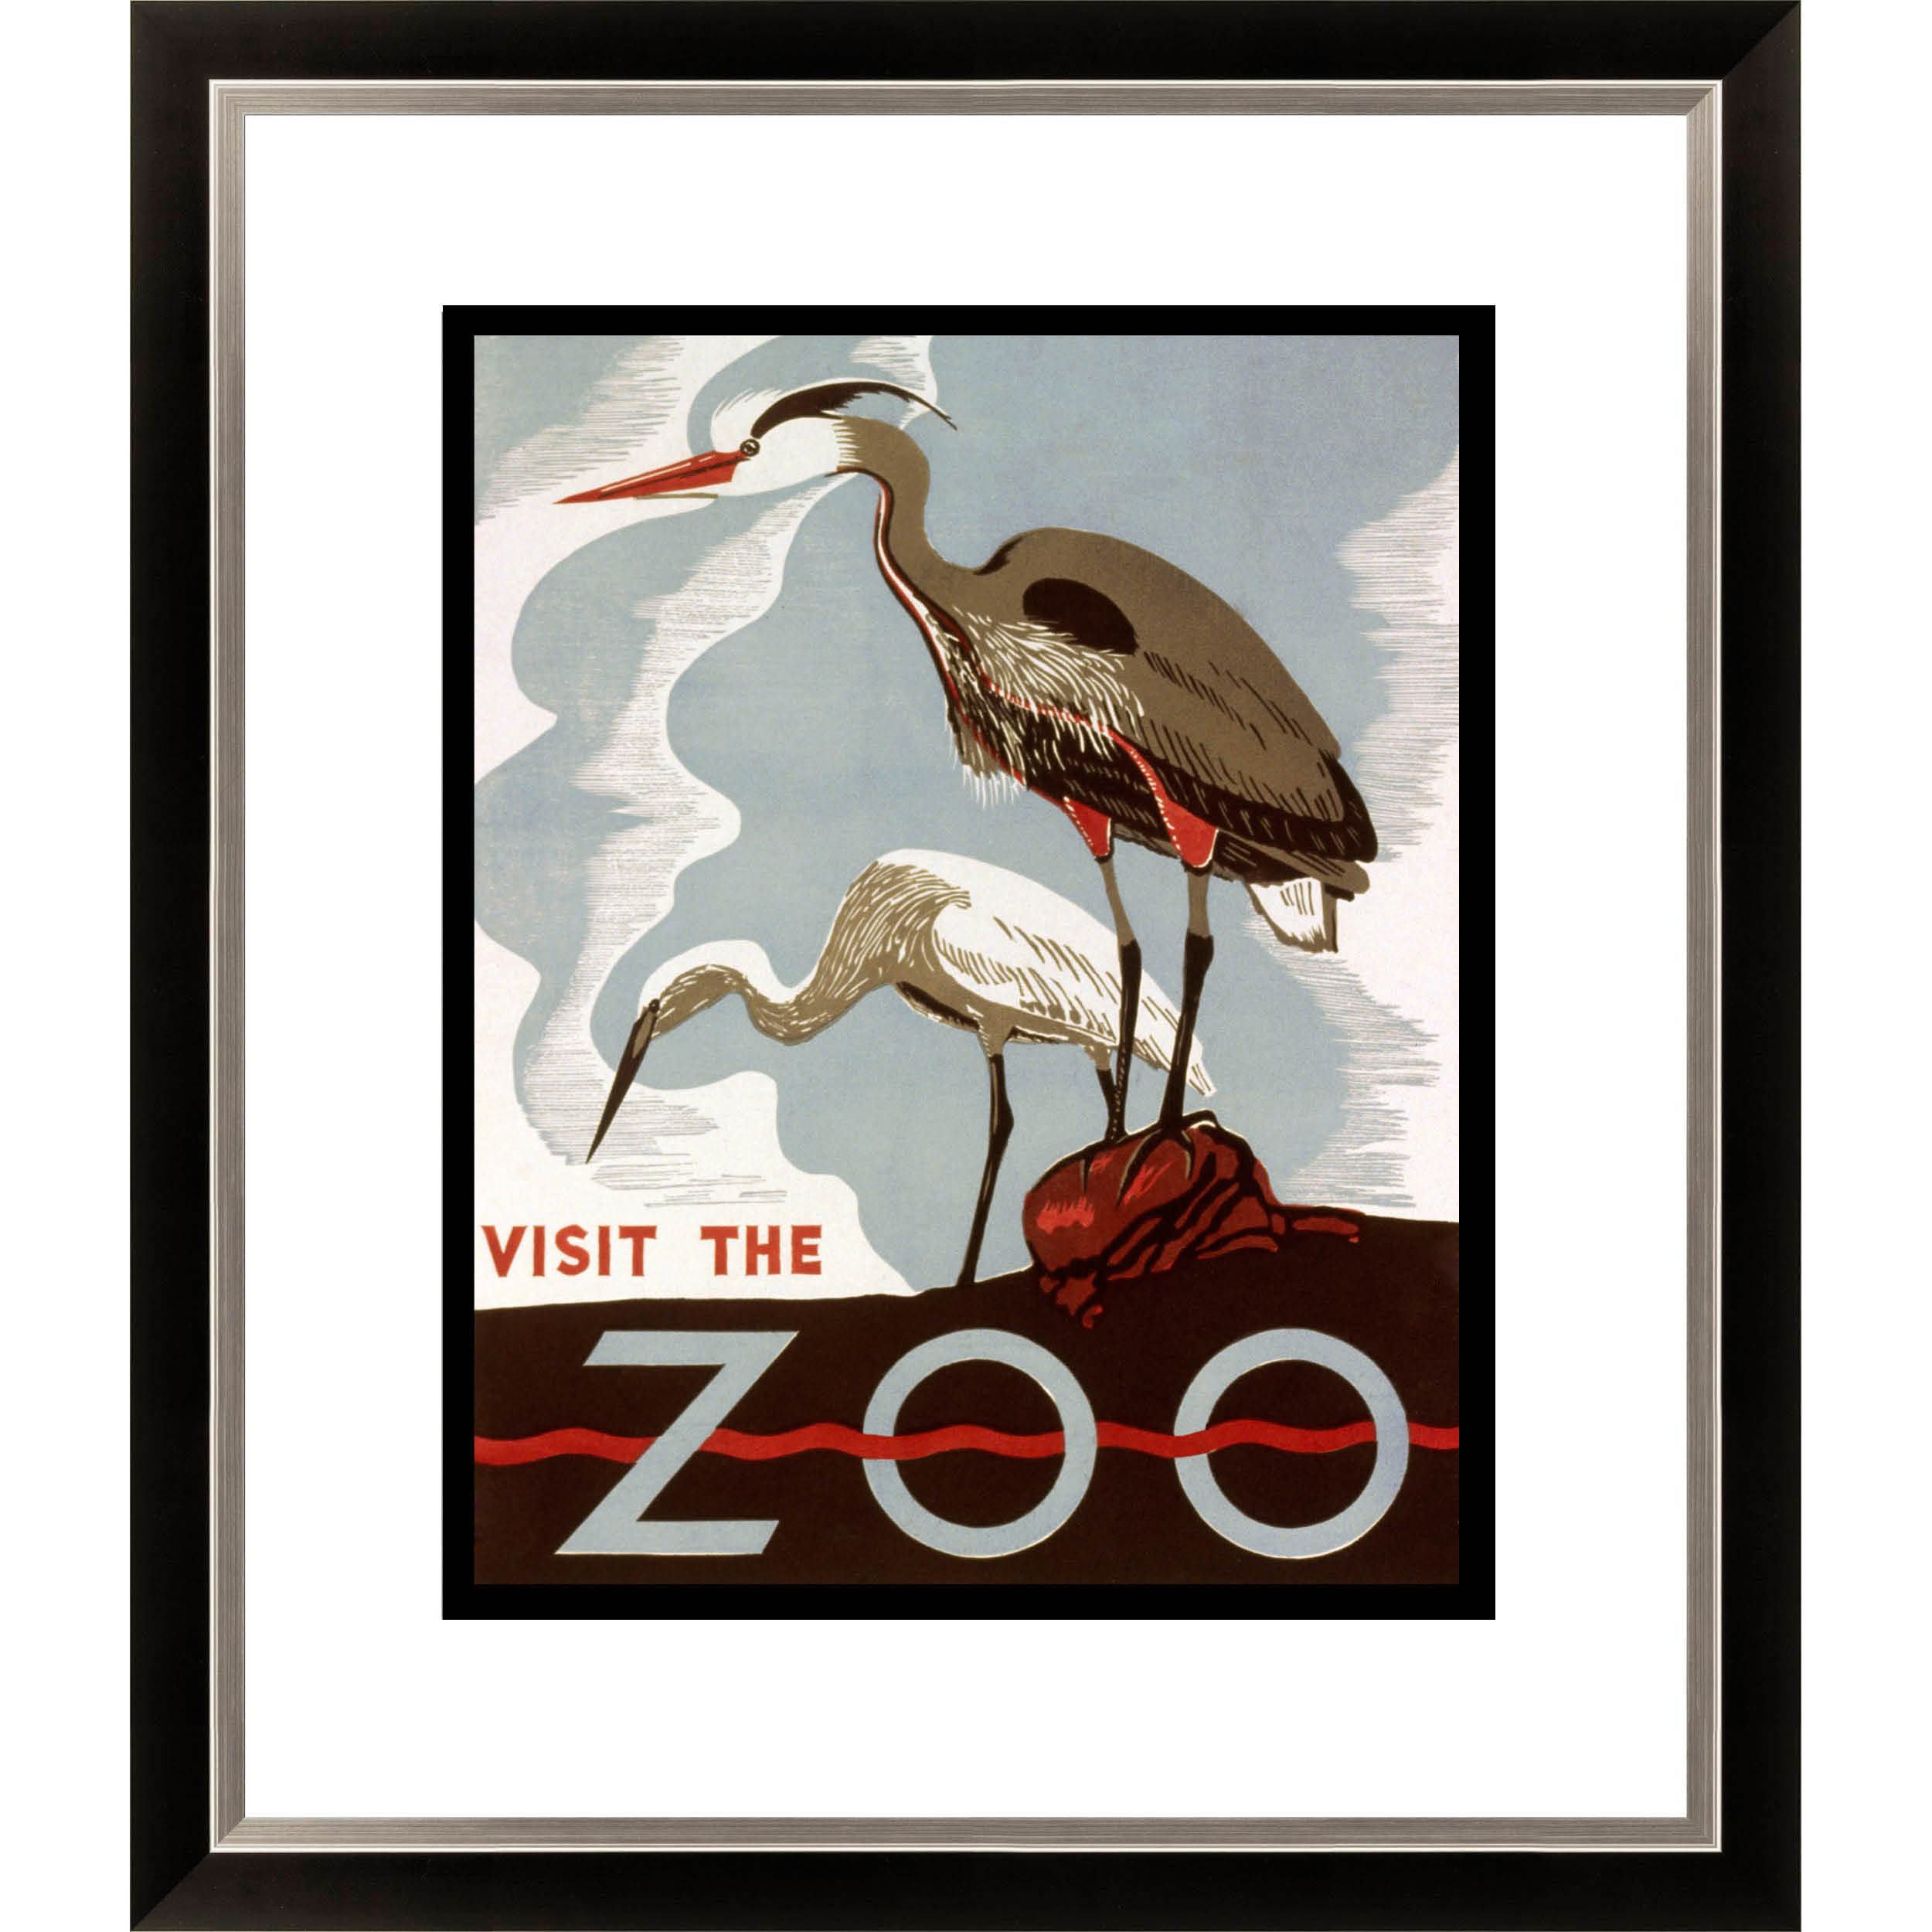 Gallery Direct Visit the Zoo Birds Framed Limited Edition Giclee Art